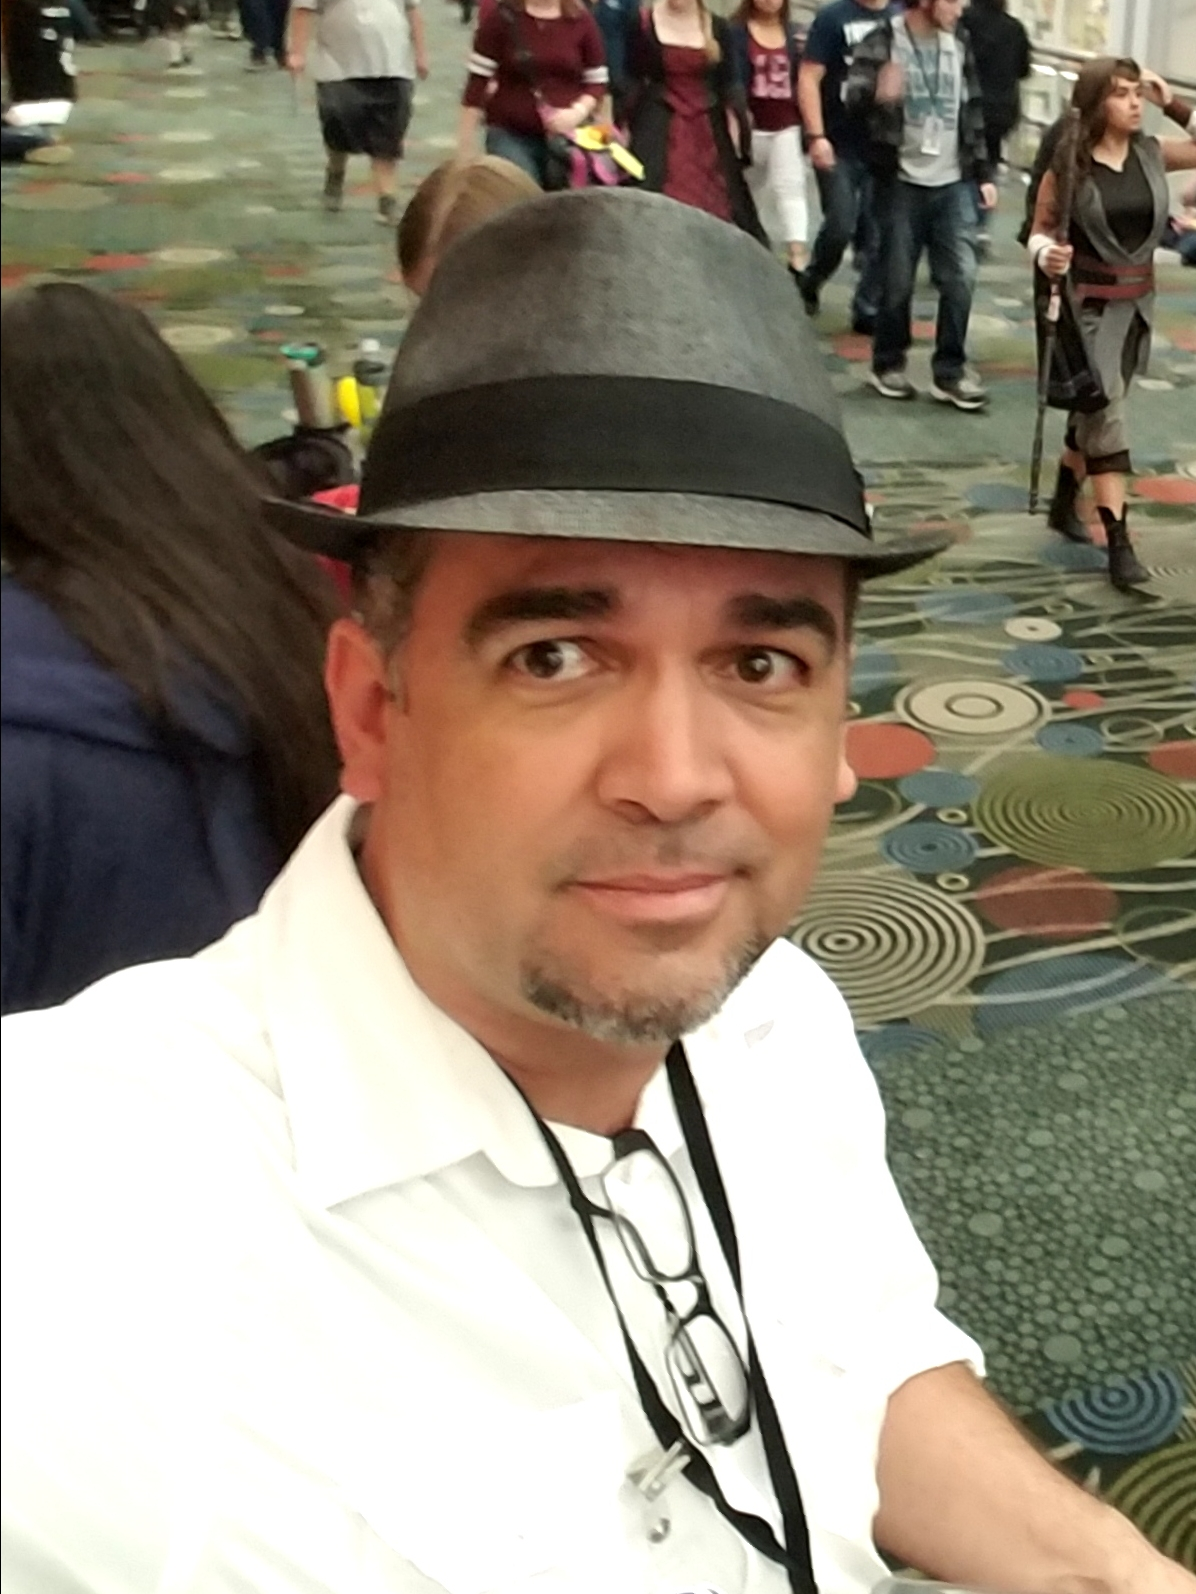 Animator Thomas Estrada